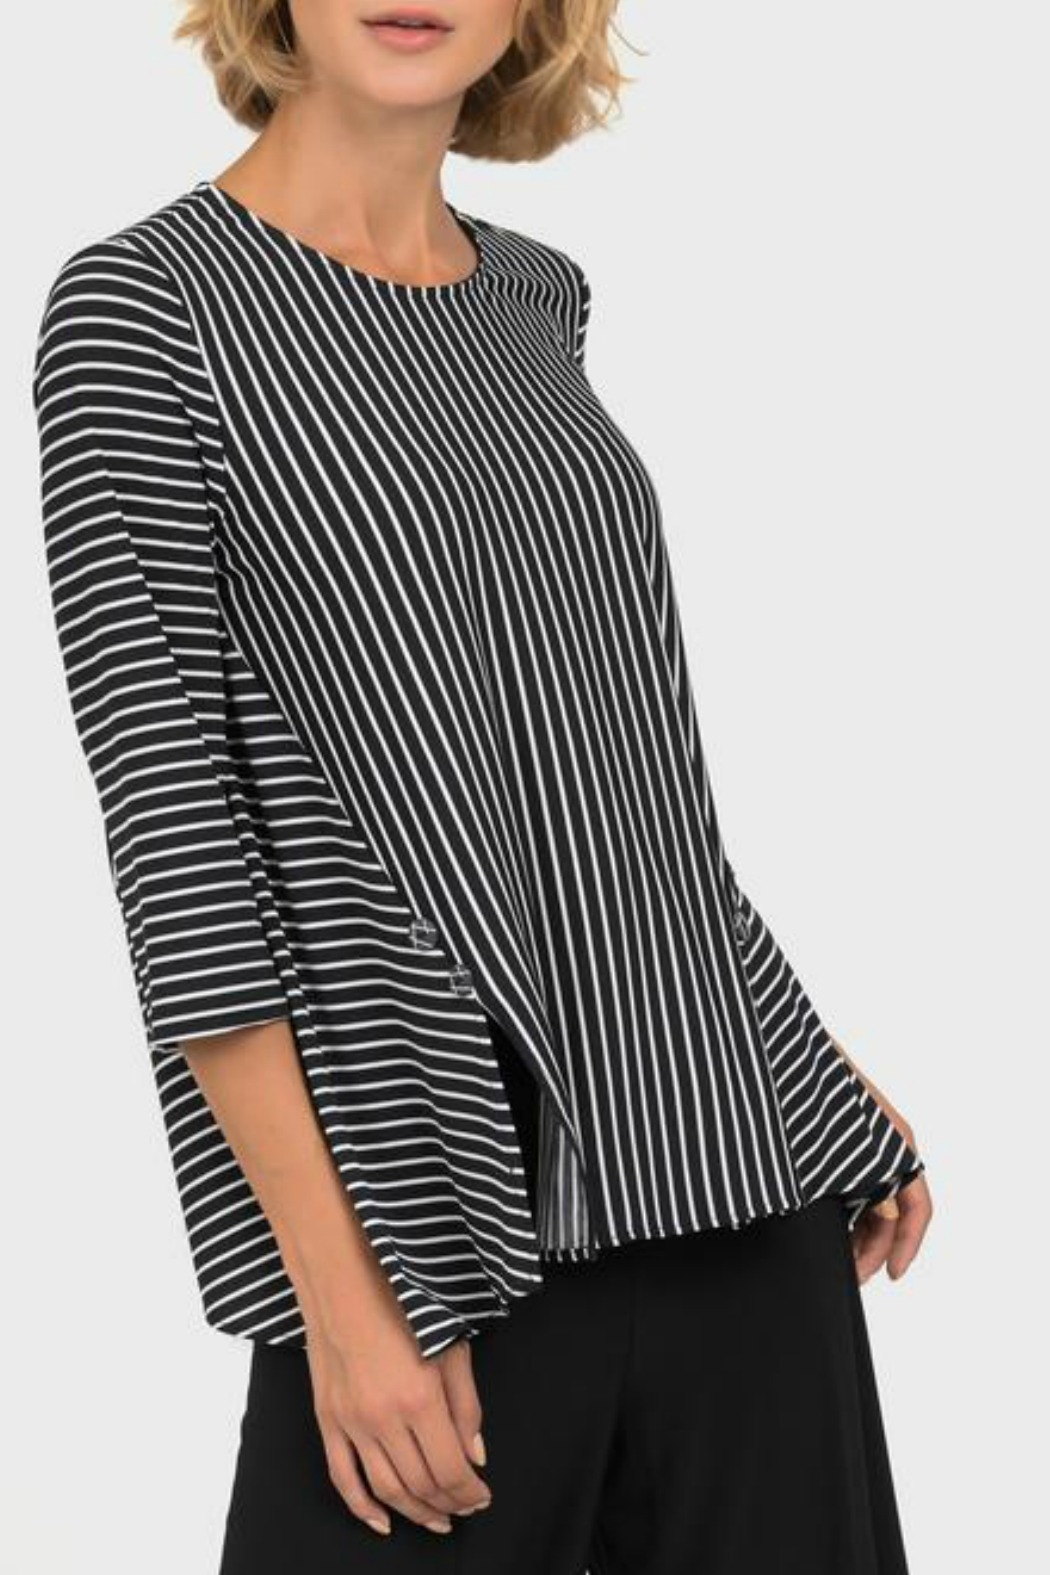 Joseph Ribkoff USA Inc. Black + White Stripe Top - Front Cropped Image